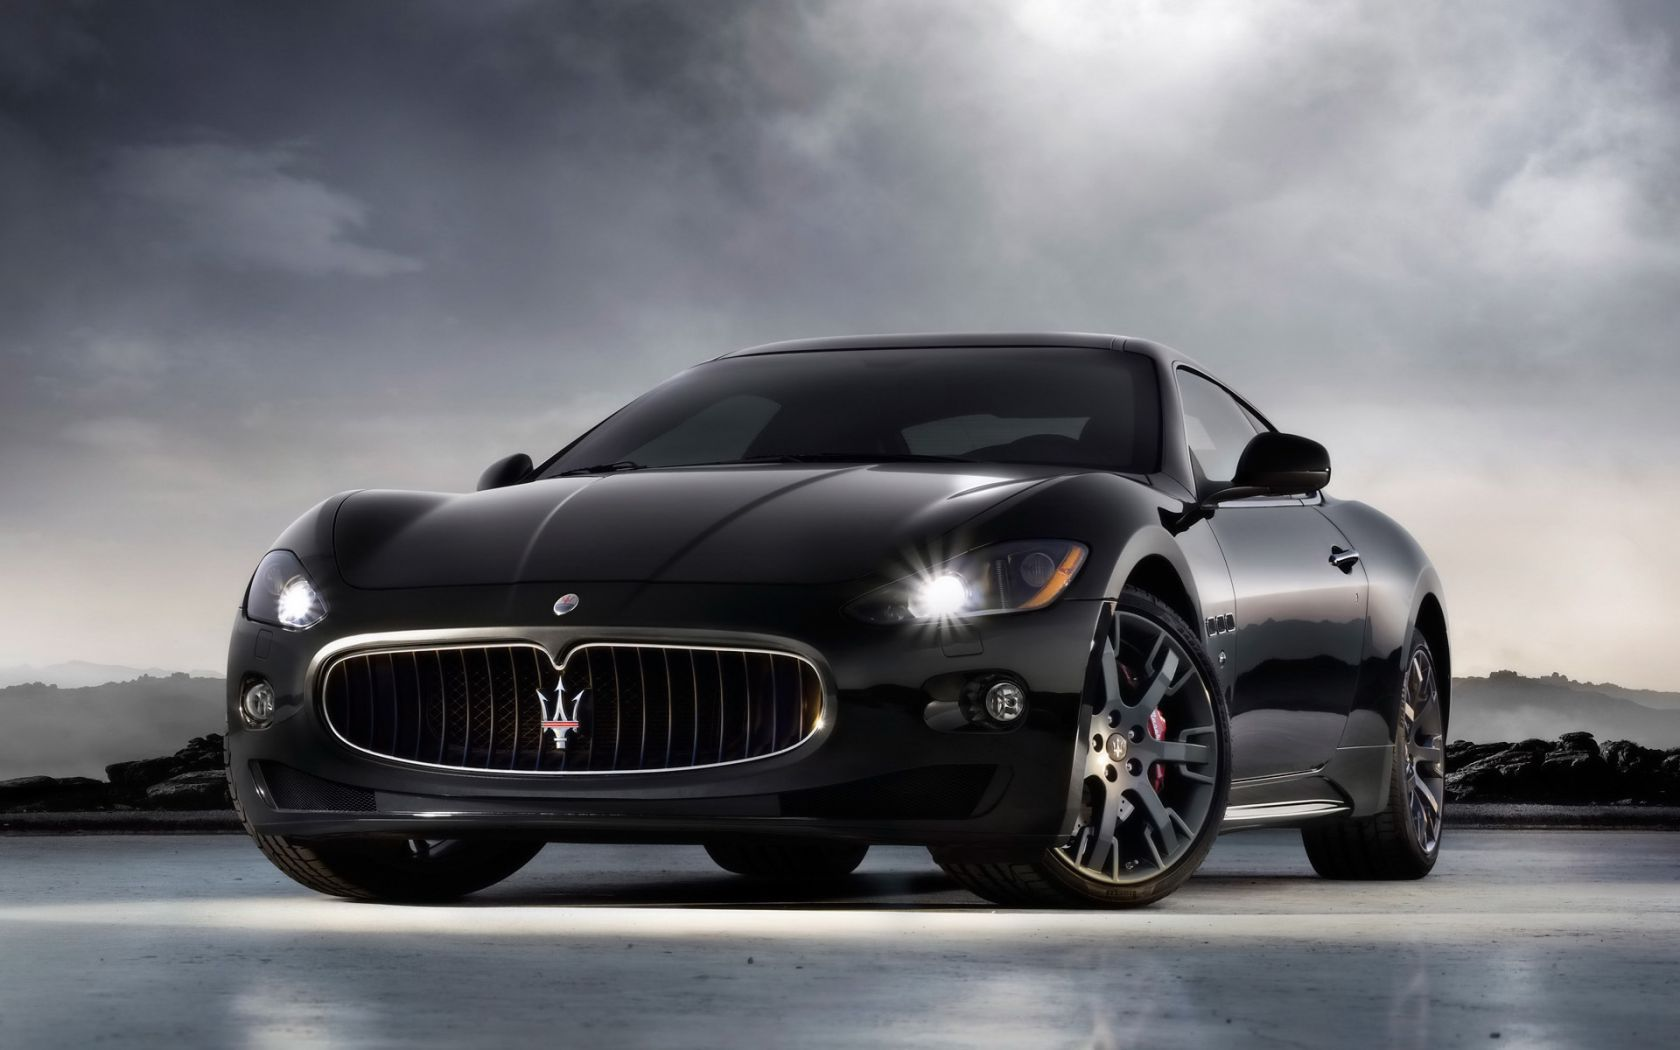 Gentil Explore Maserati Granturismo, Top Car, And More!